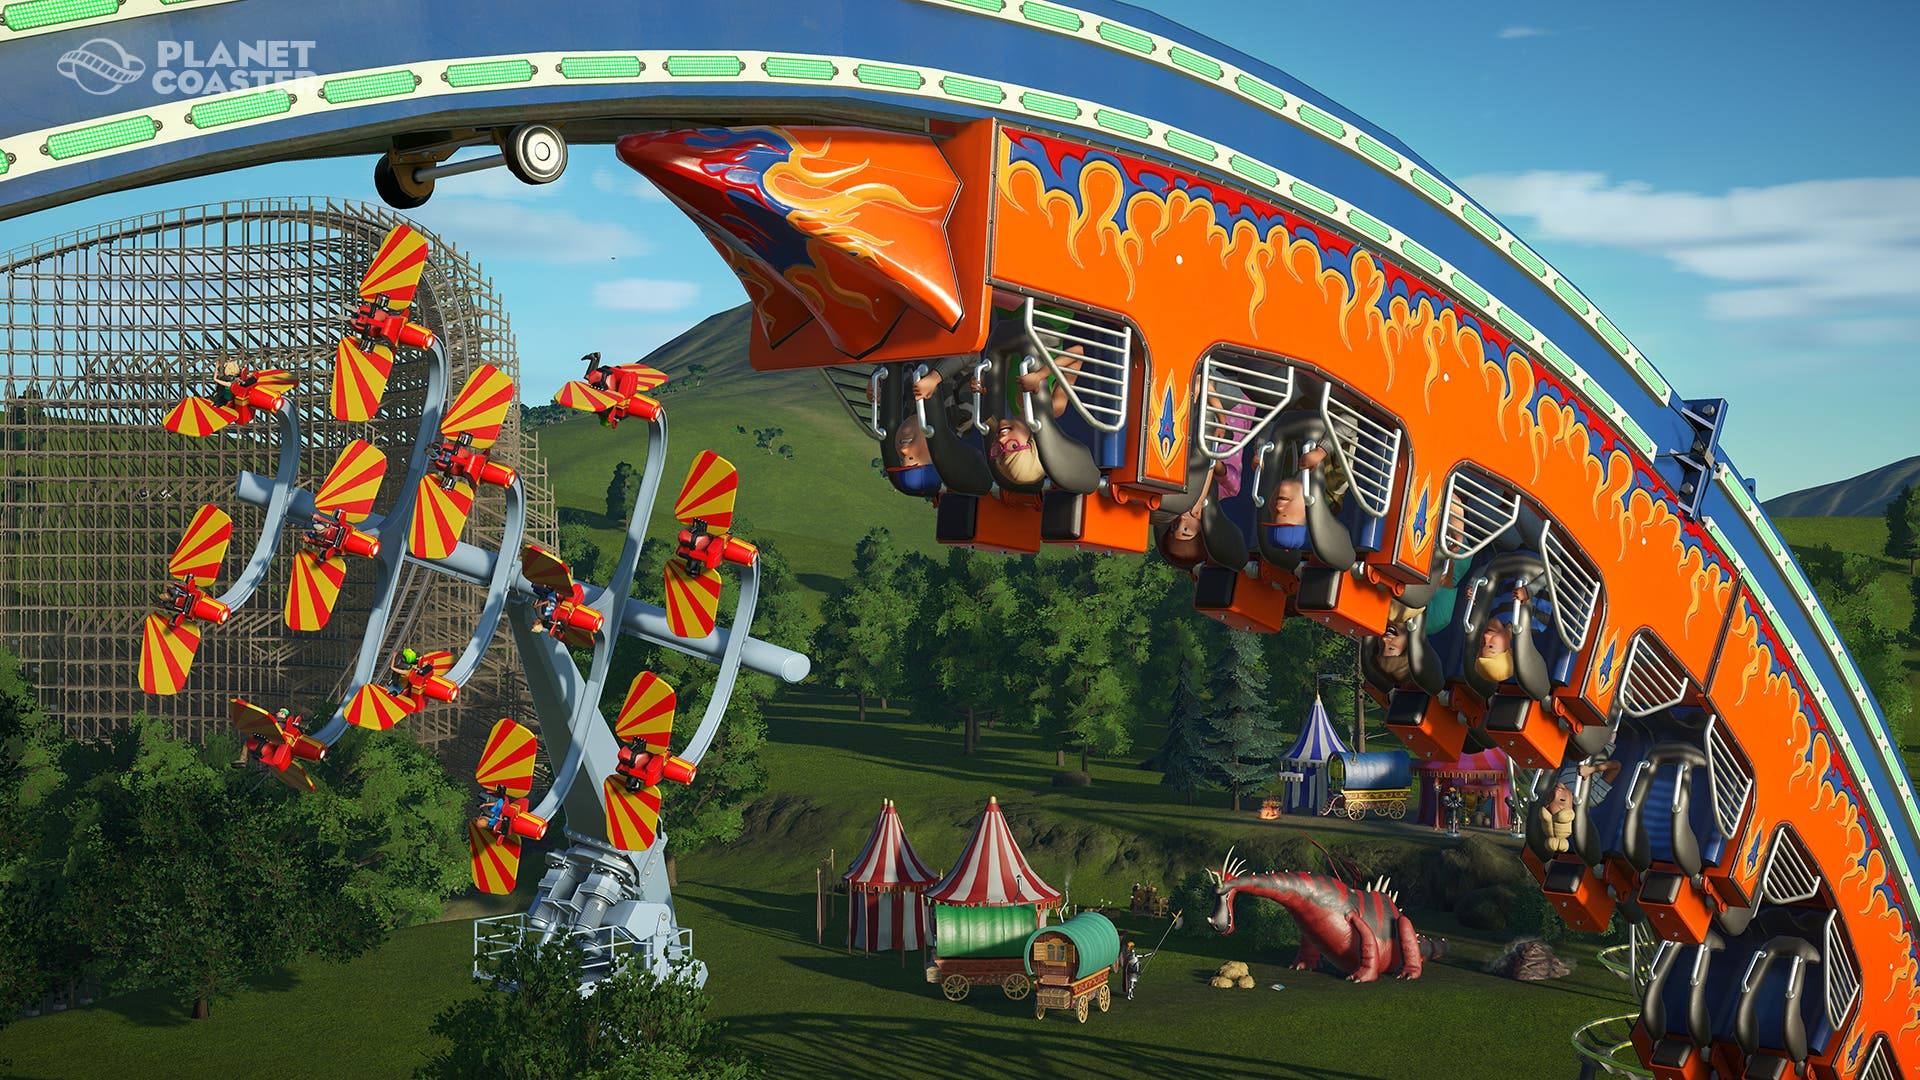 PlanetCoaster featured